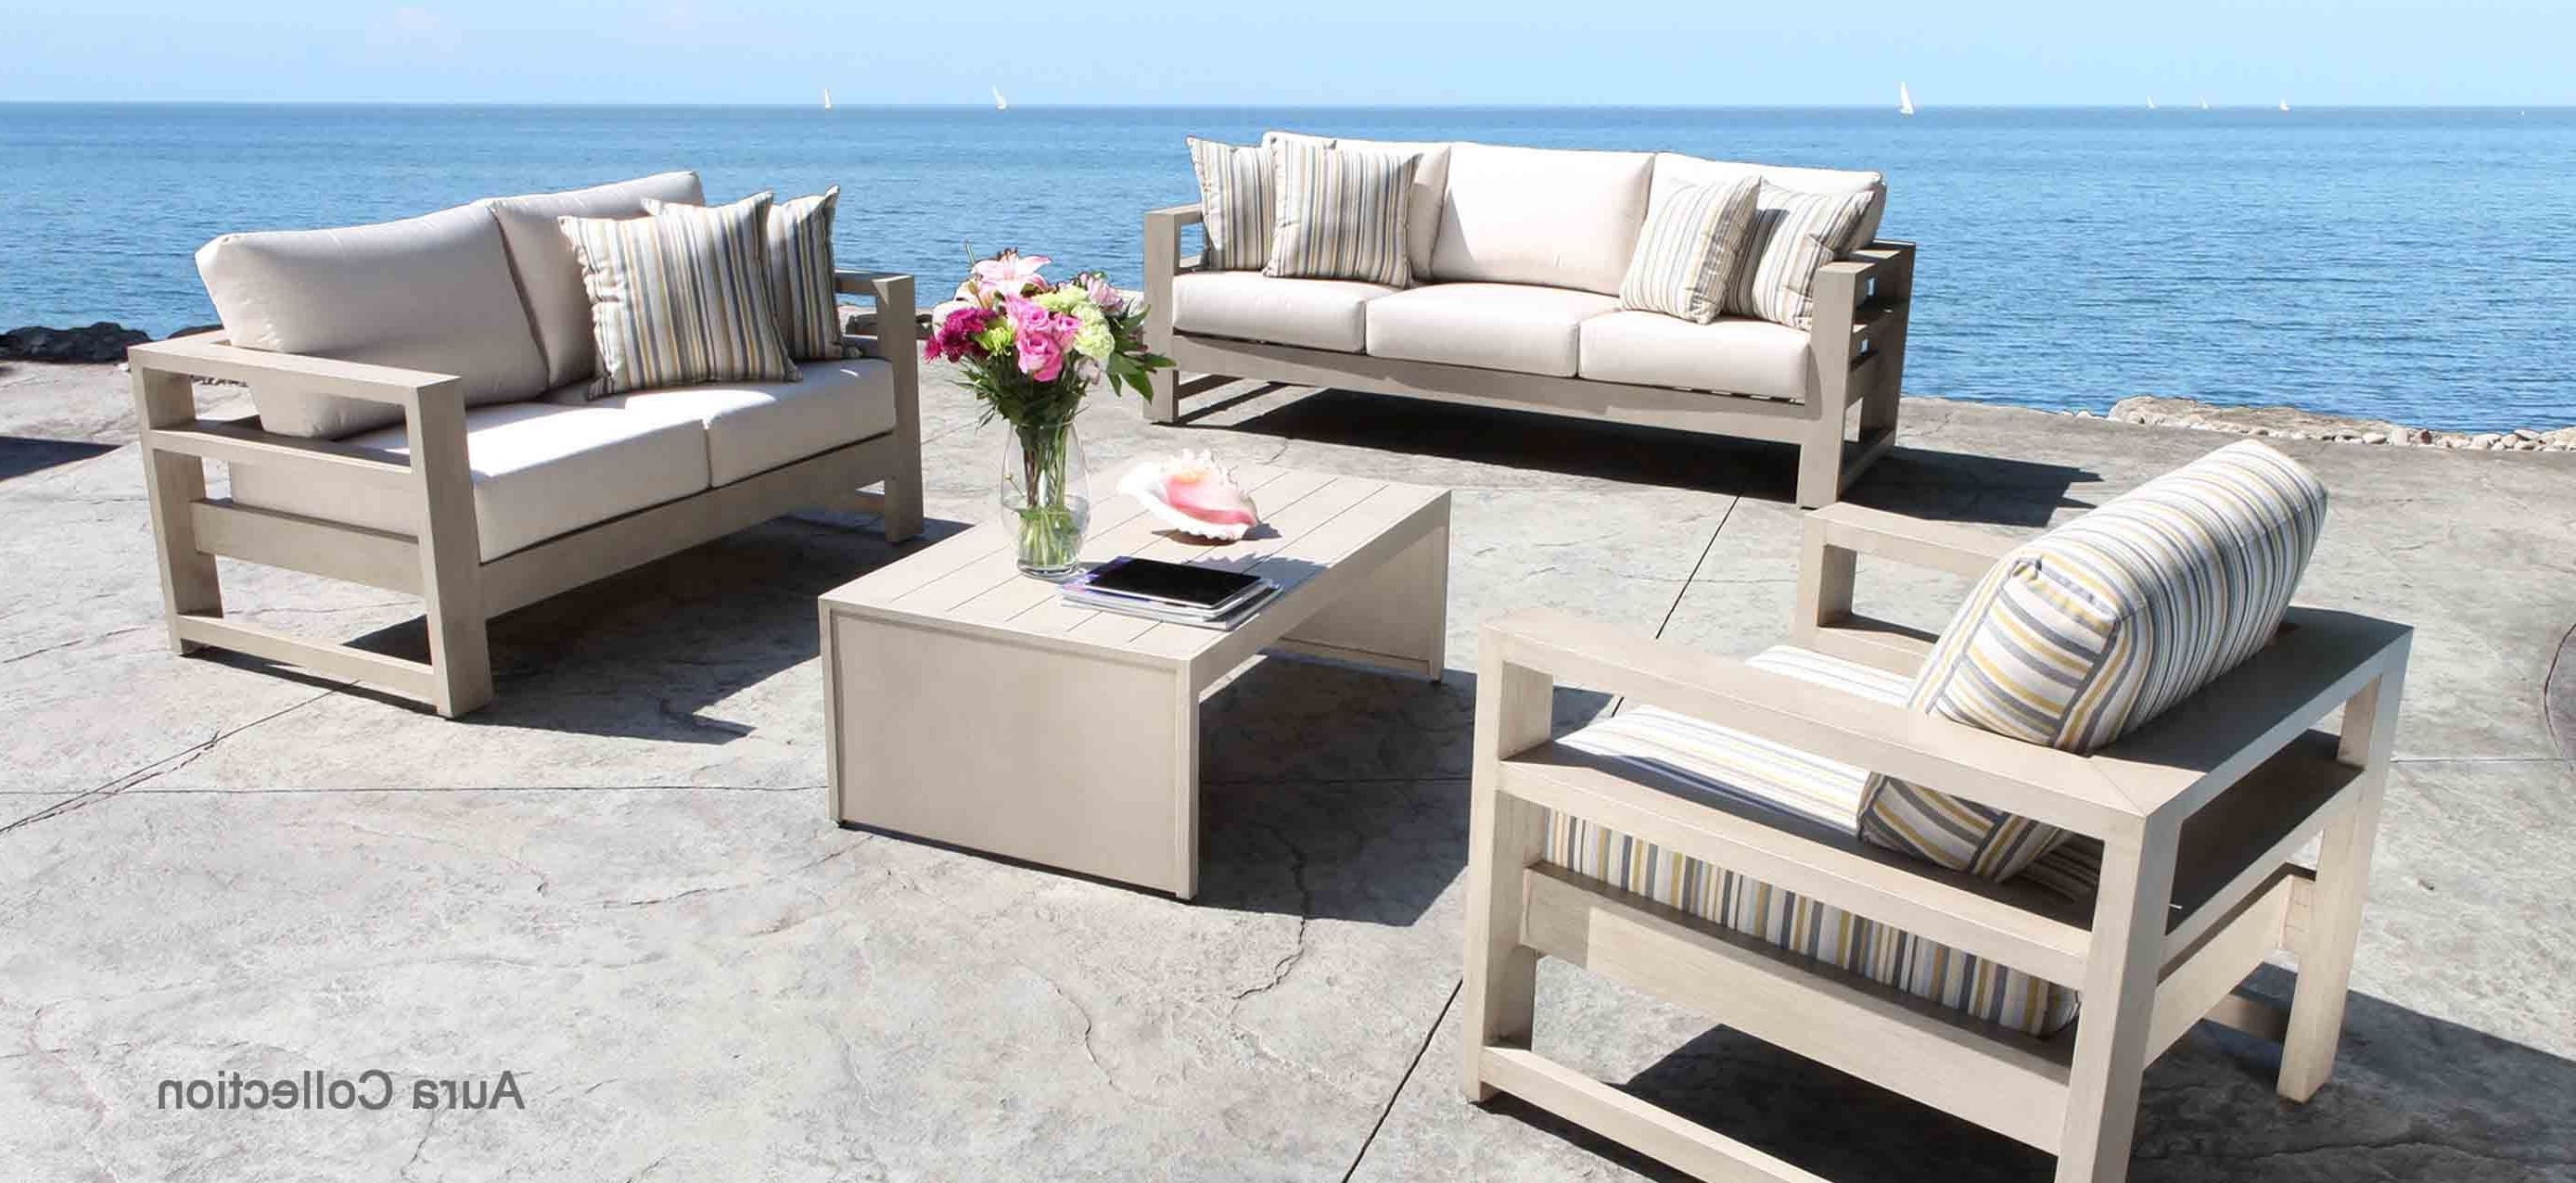 Aluminum Patio Conversation Sets Intended For 2017 Aura Cast Aluminum Patio Furniture Conversation Set With A Modern (View 3 of 15)